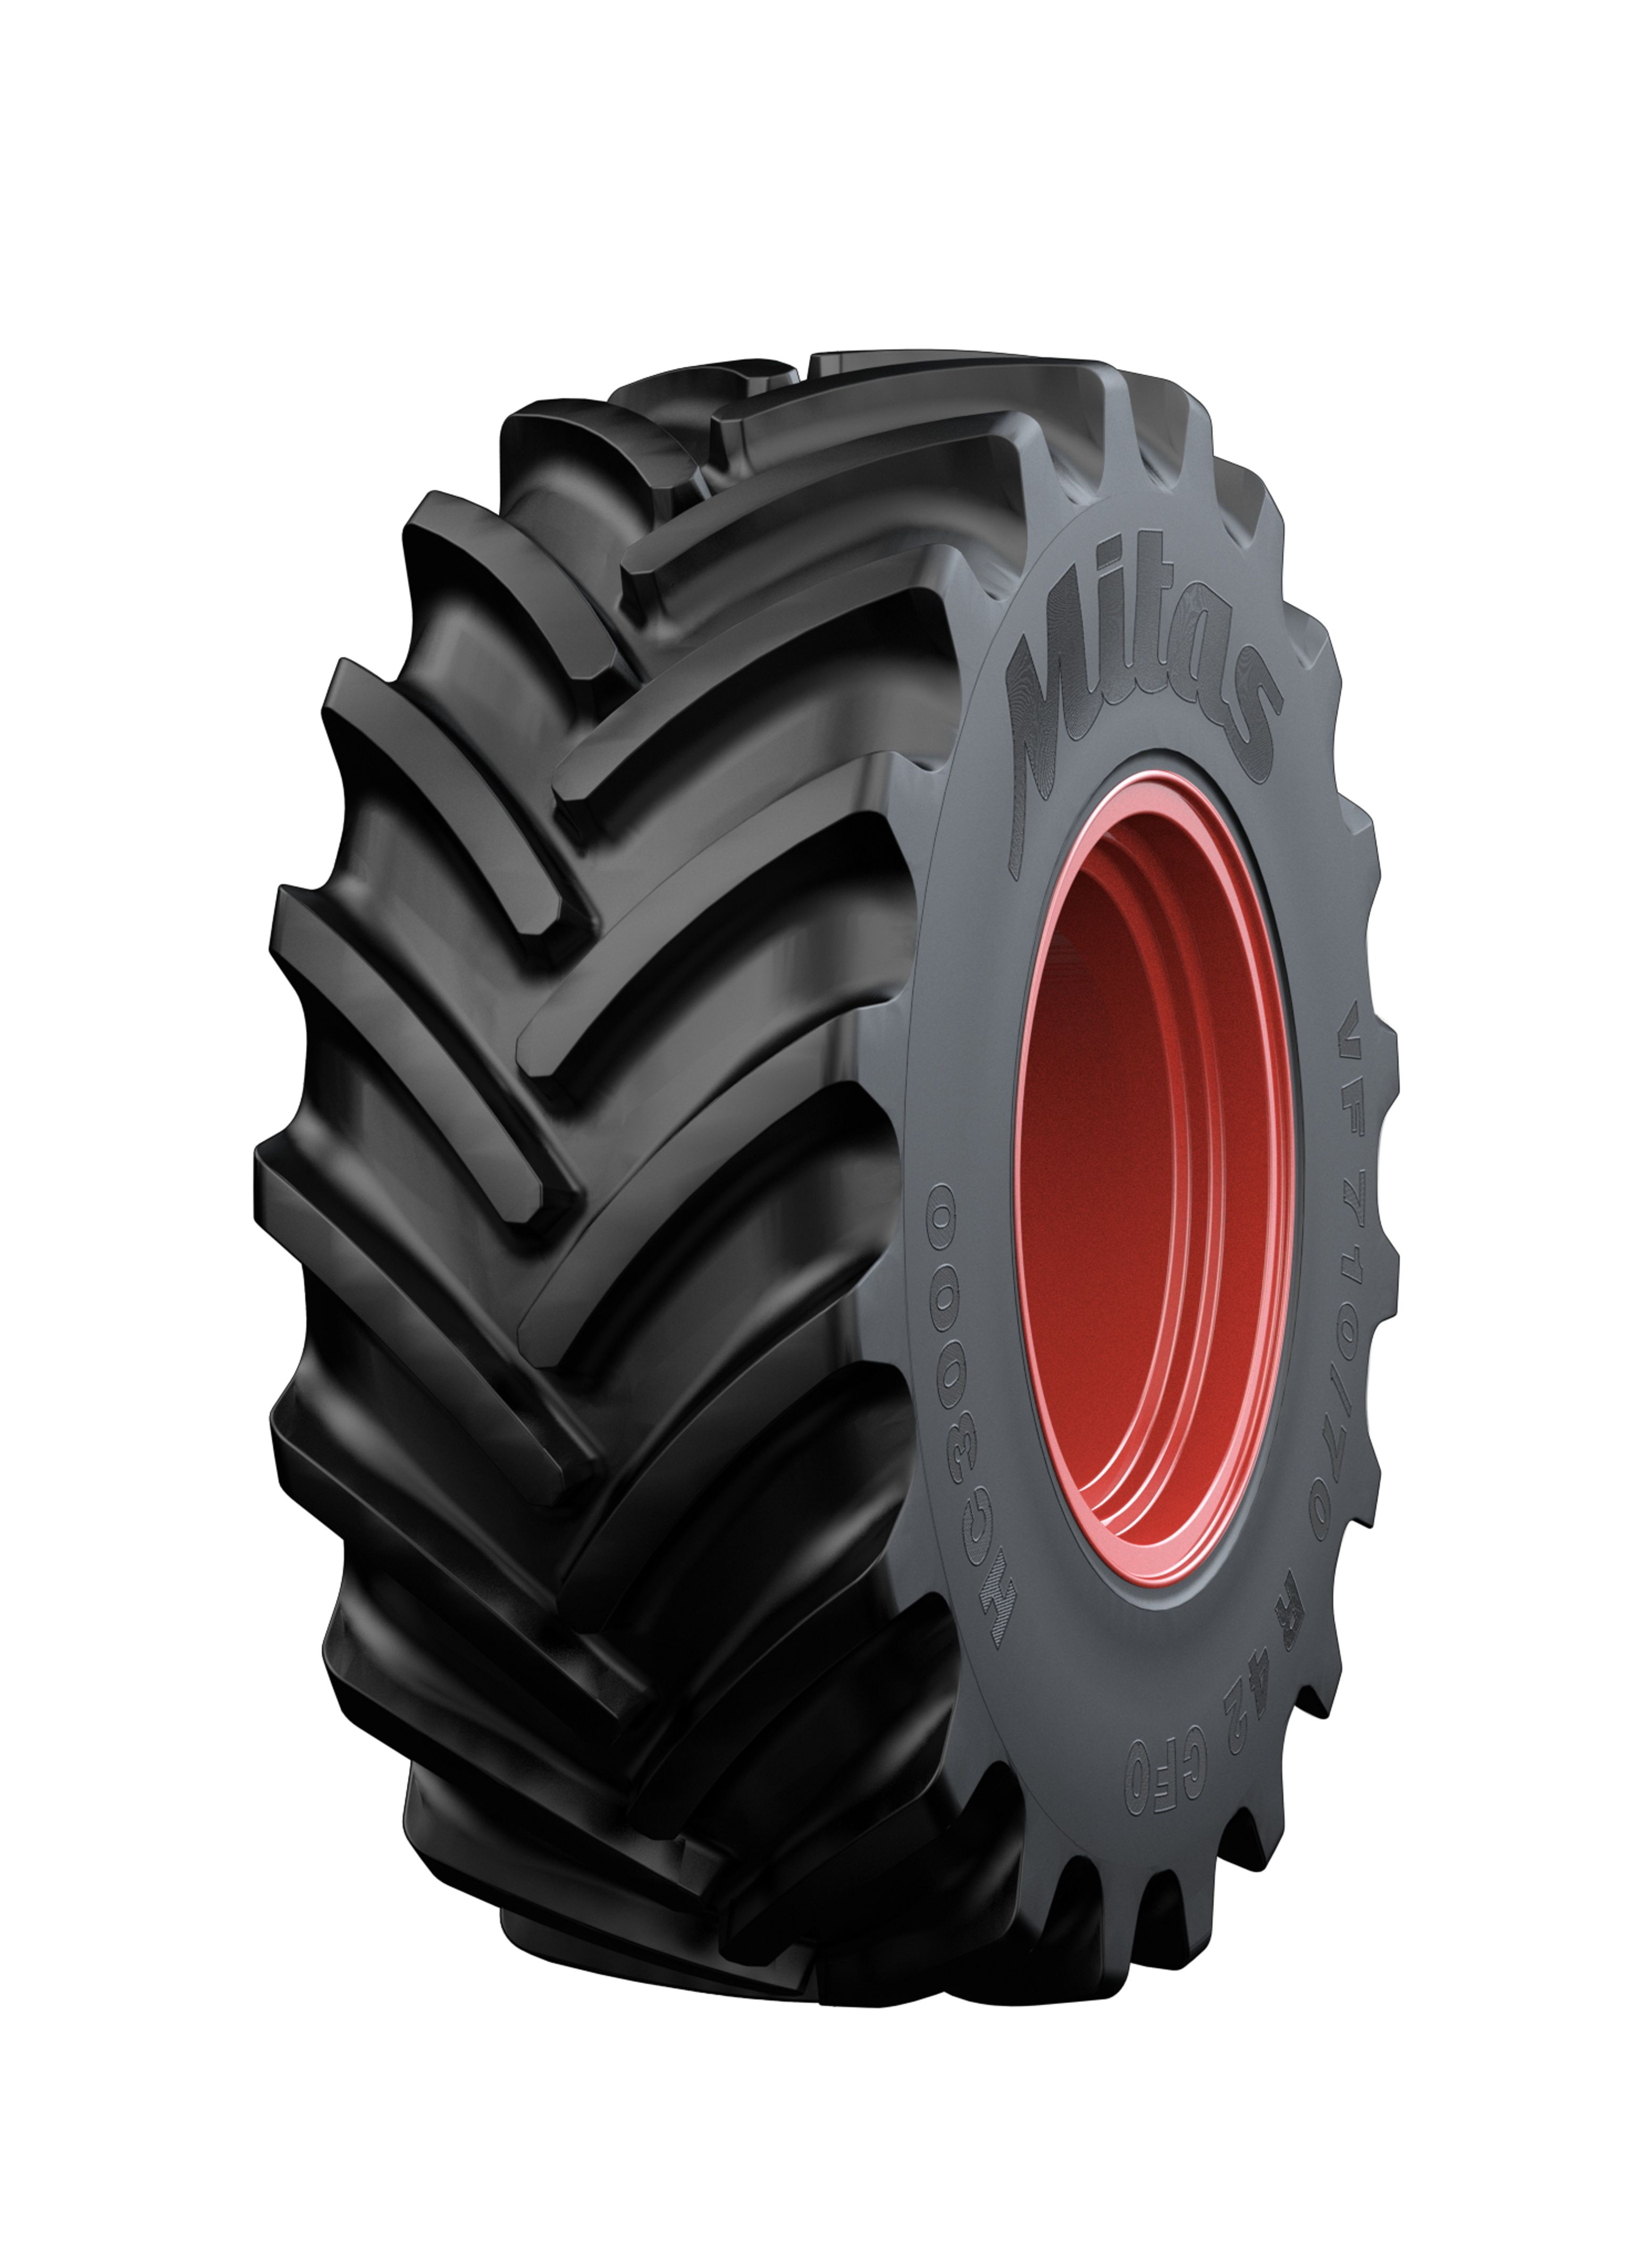 Mitas adds VF tire for harvesters